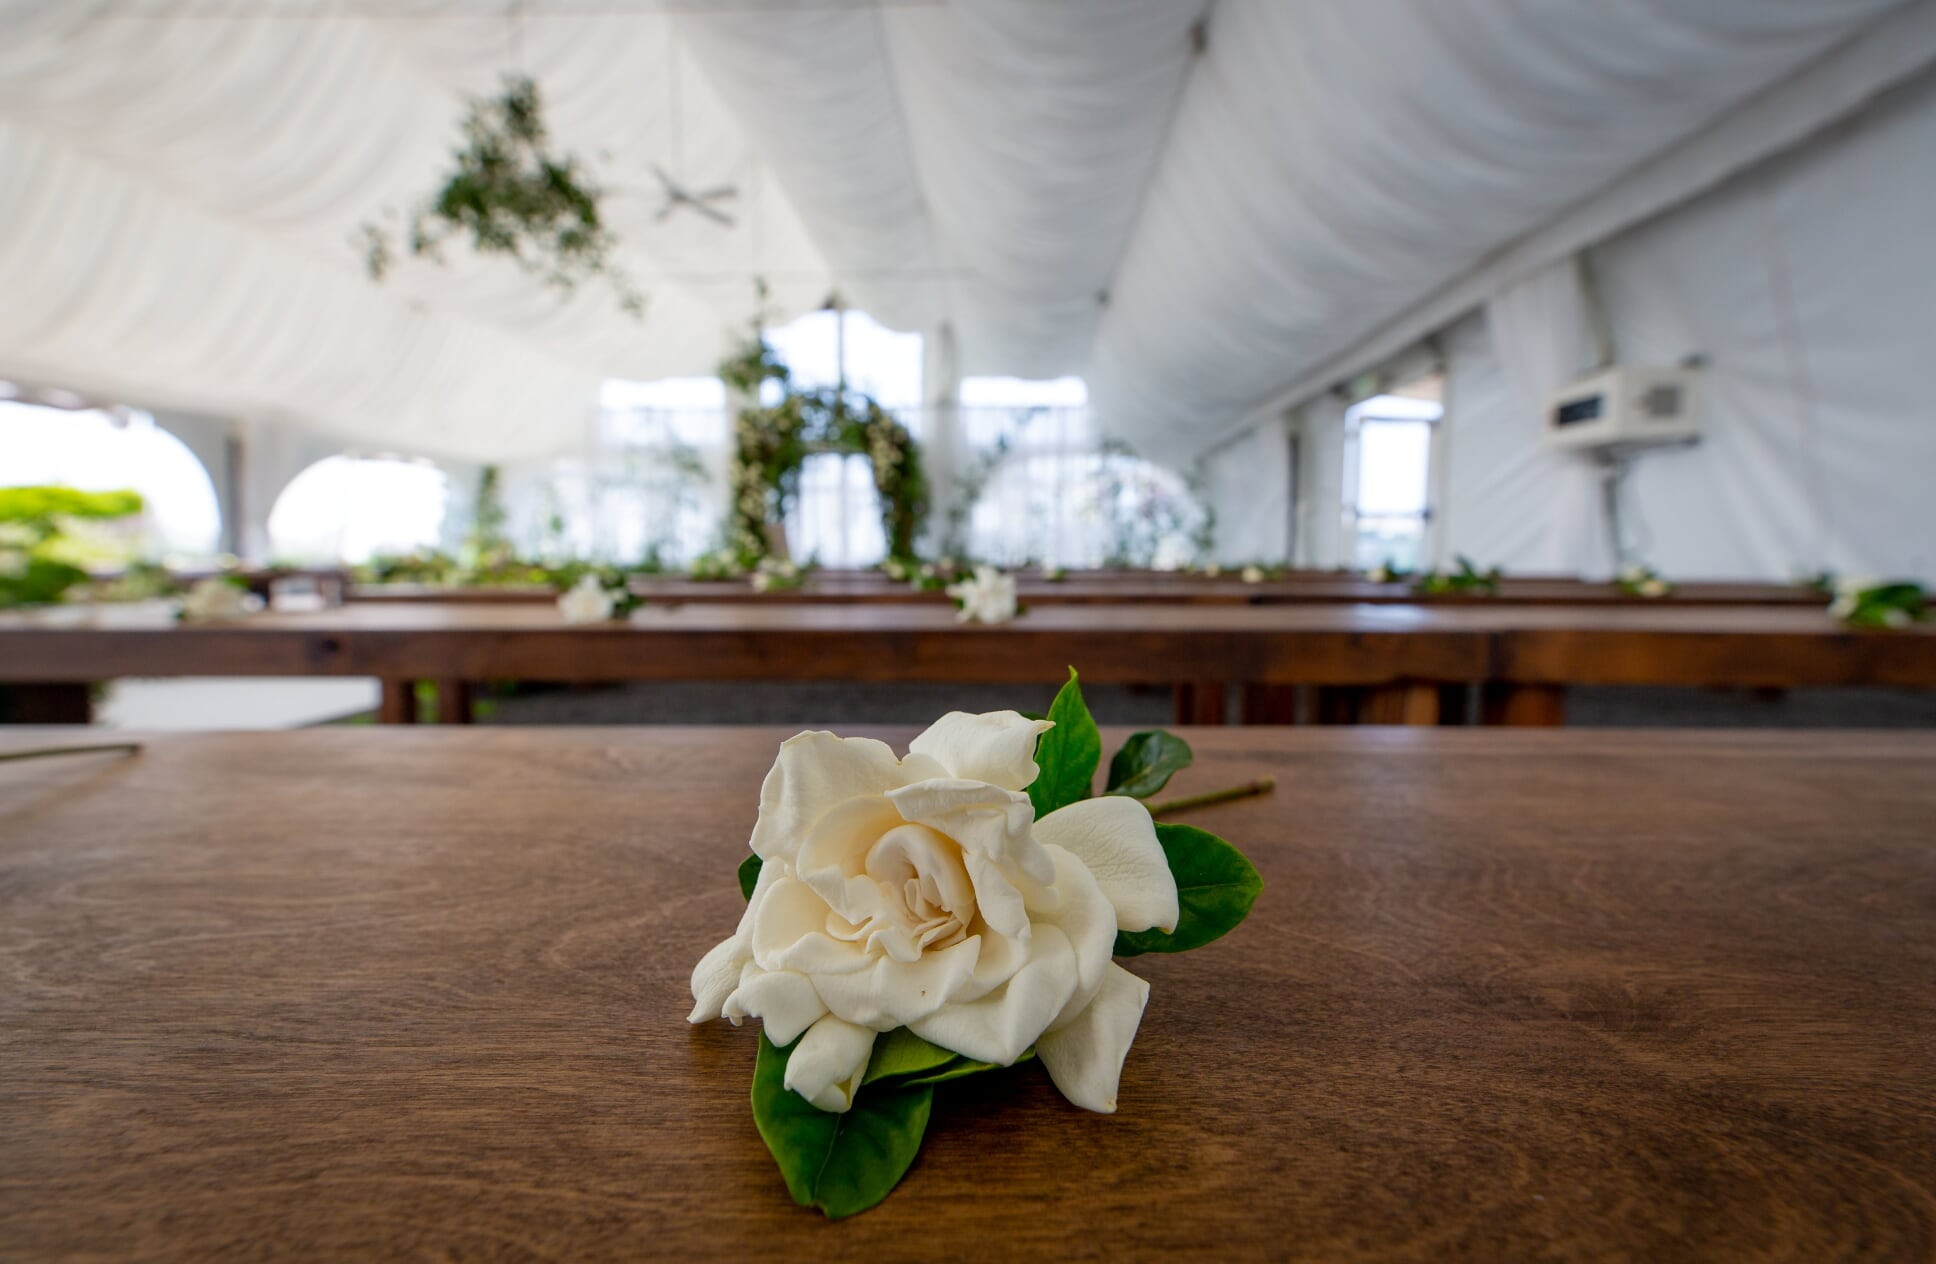 Gardenia placed on ceremony wooden bench under white tent